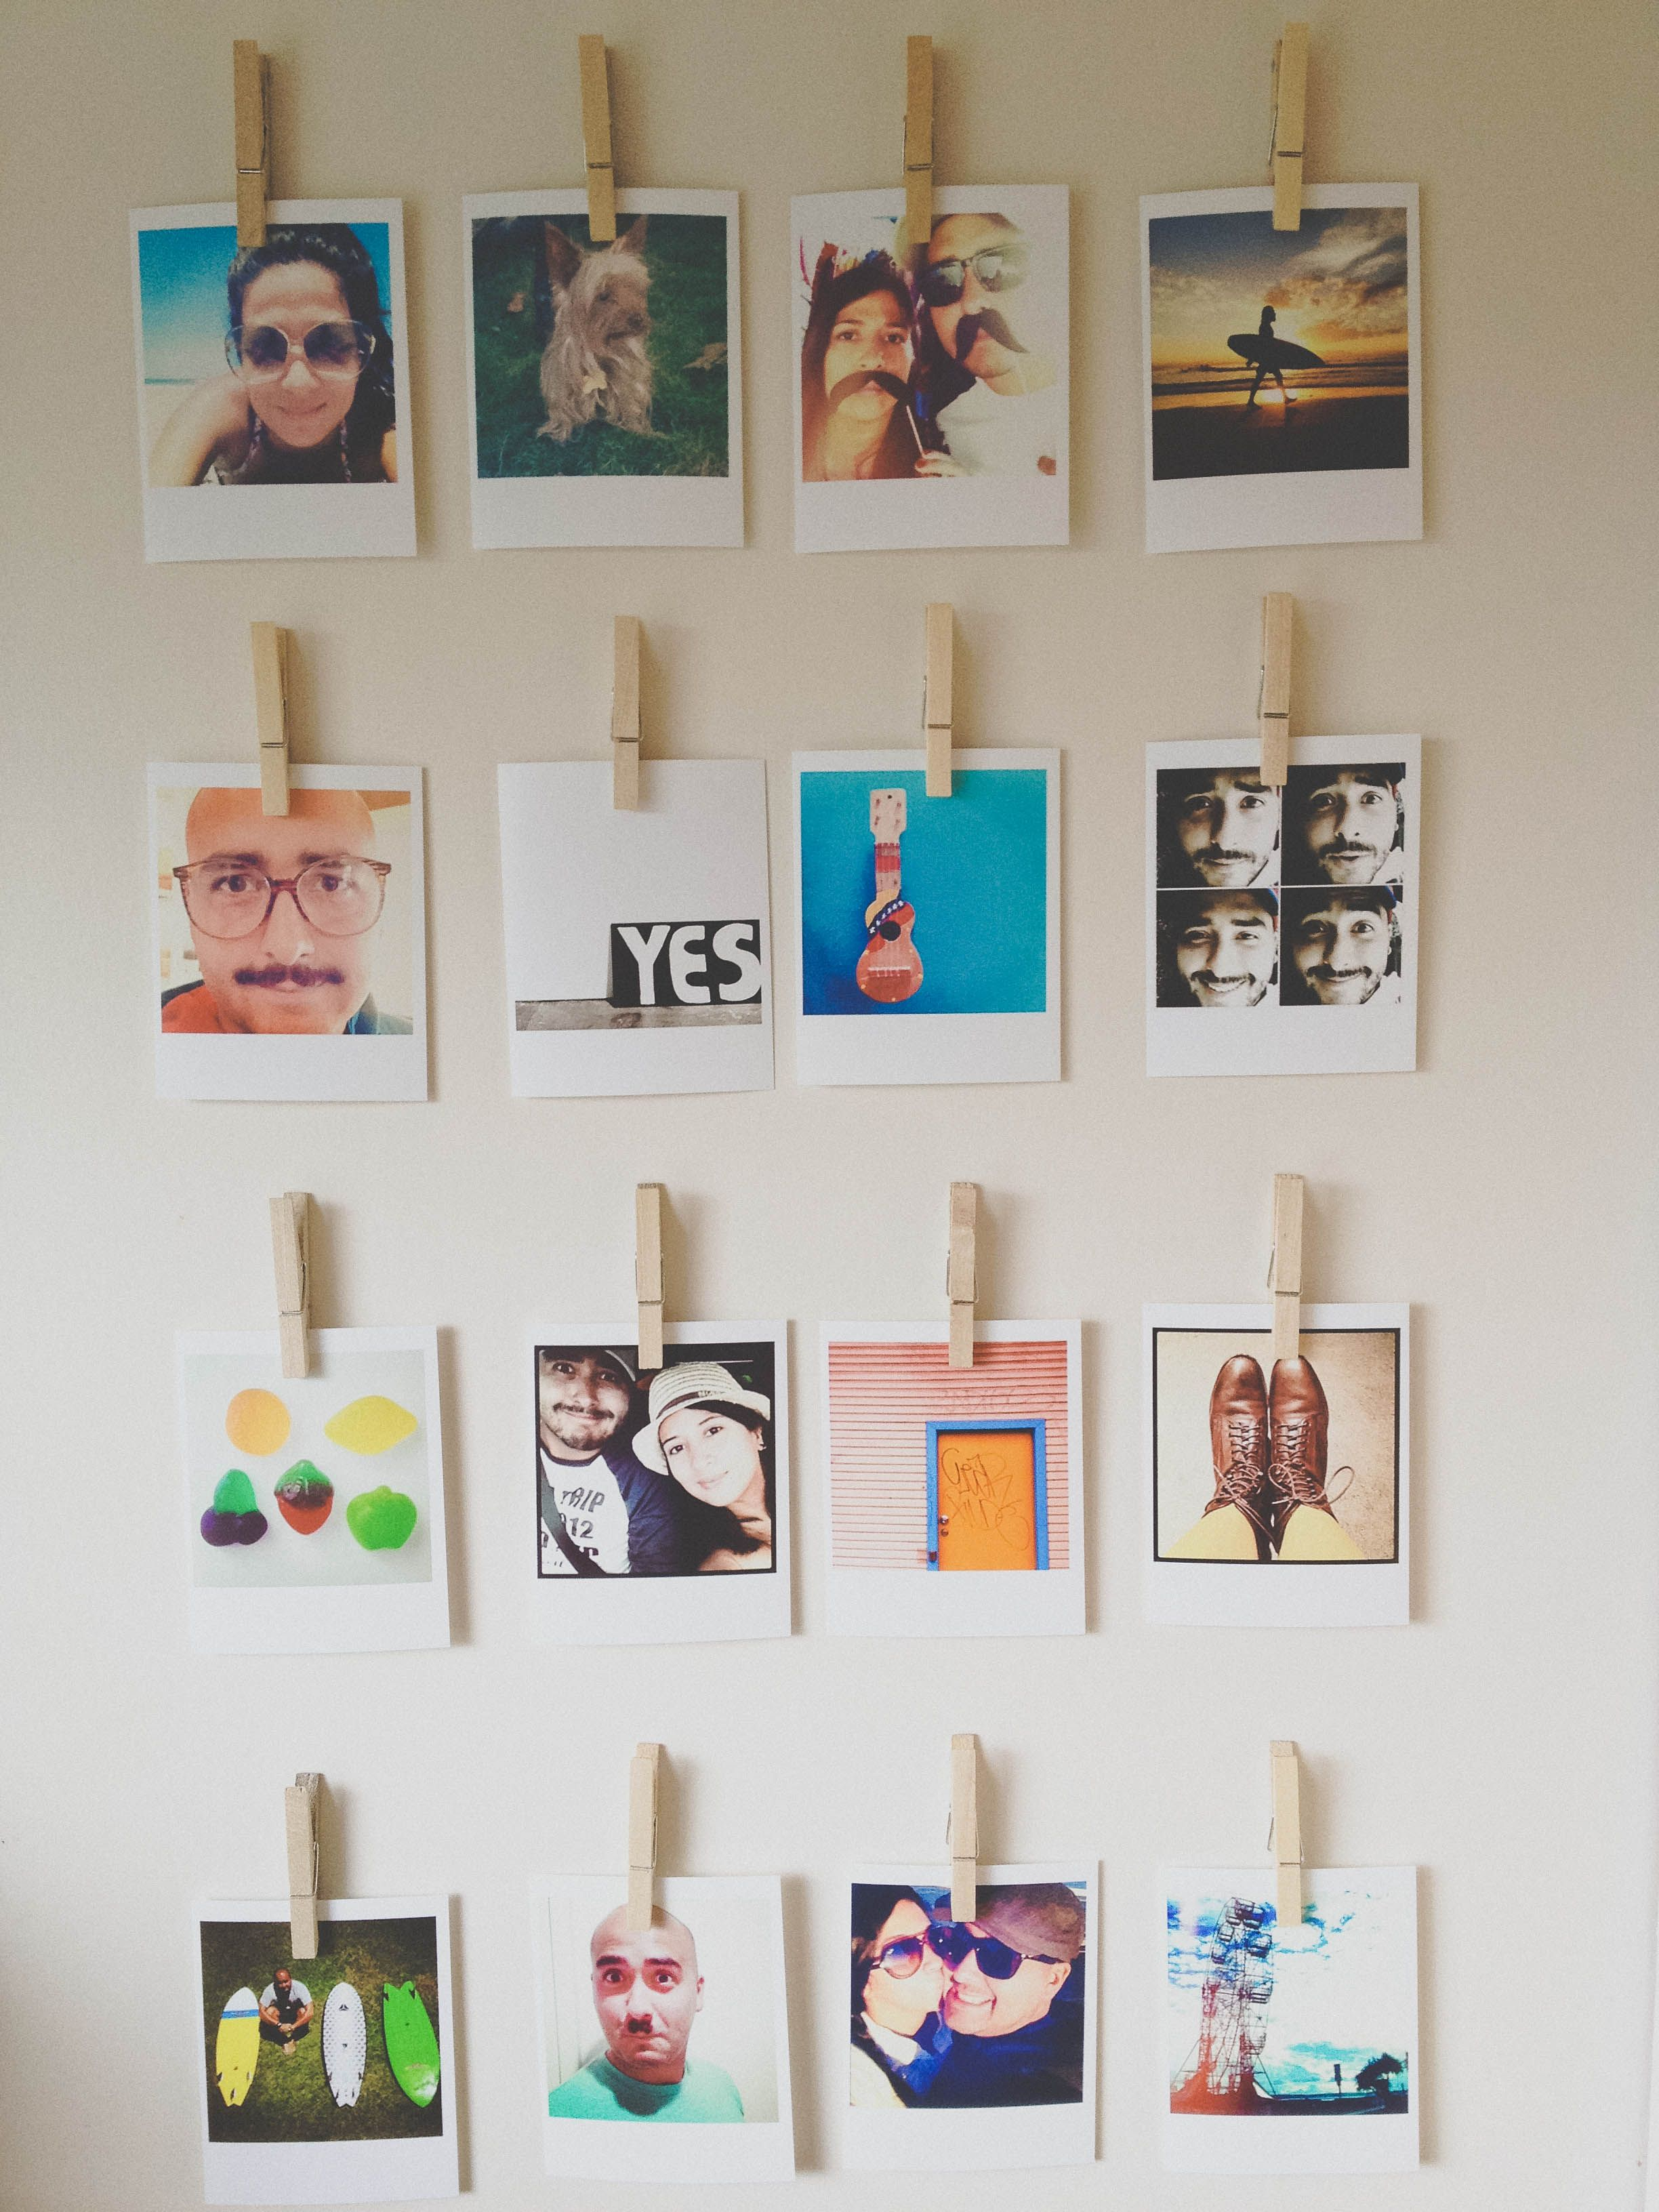 Our Instagram Project Instagram Projects Cool Things To Make Family Photo Wall